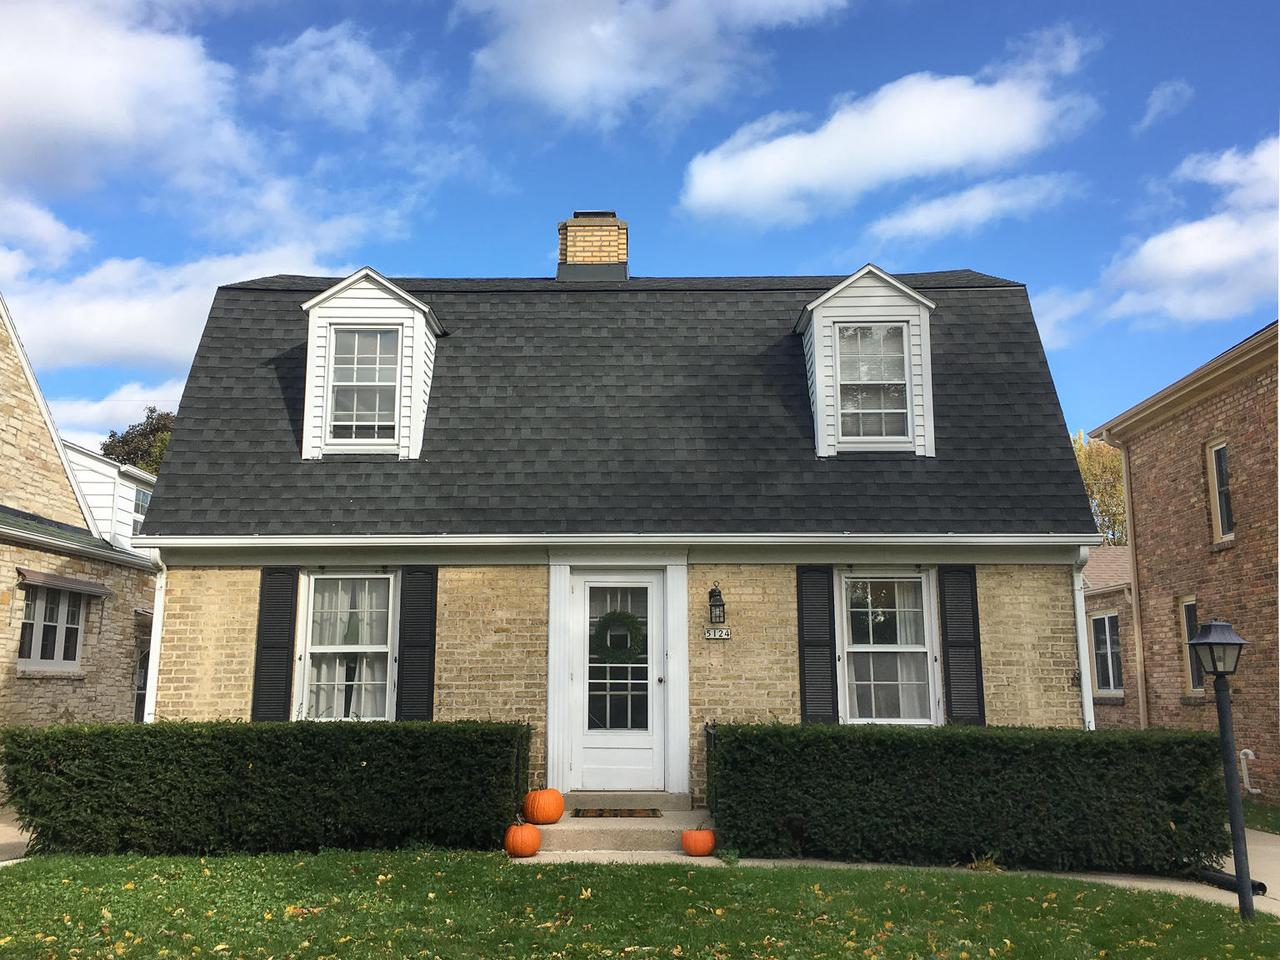 5124 N Hollywood Ave AVENUE, WHITEFISH BAY, WI 53217